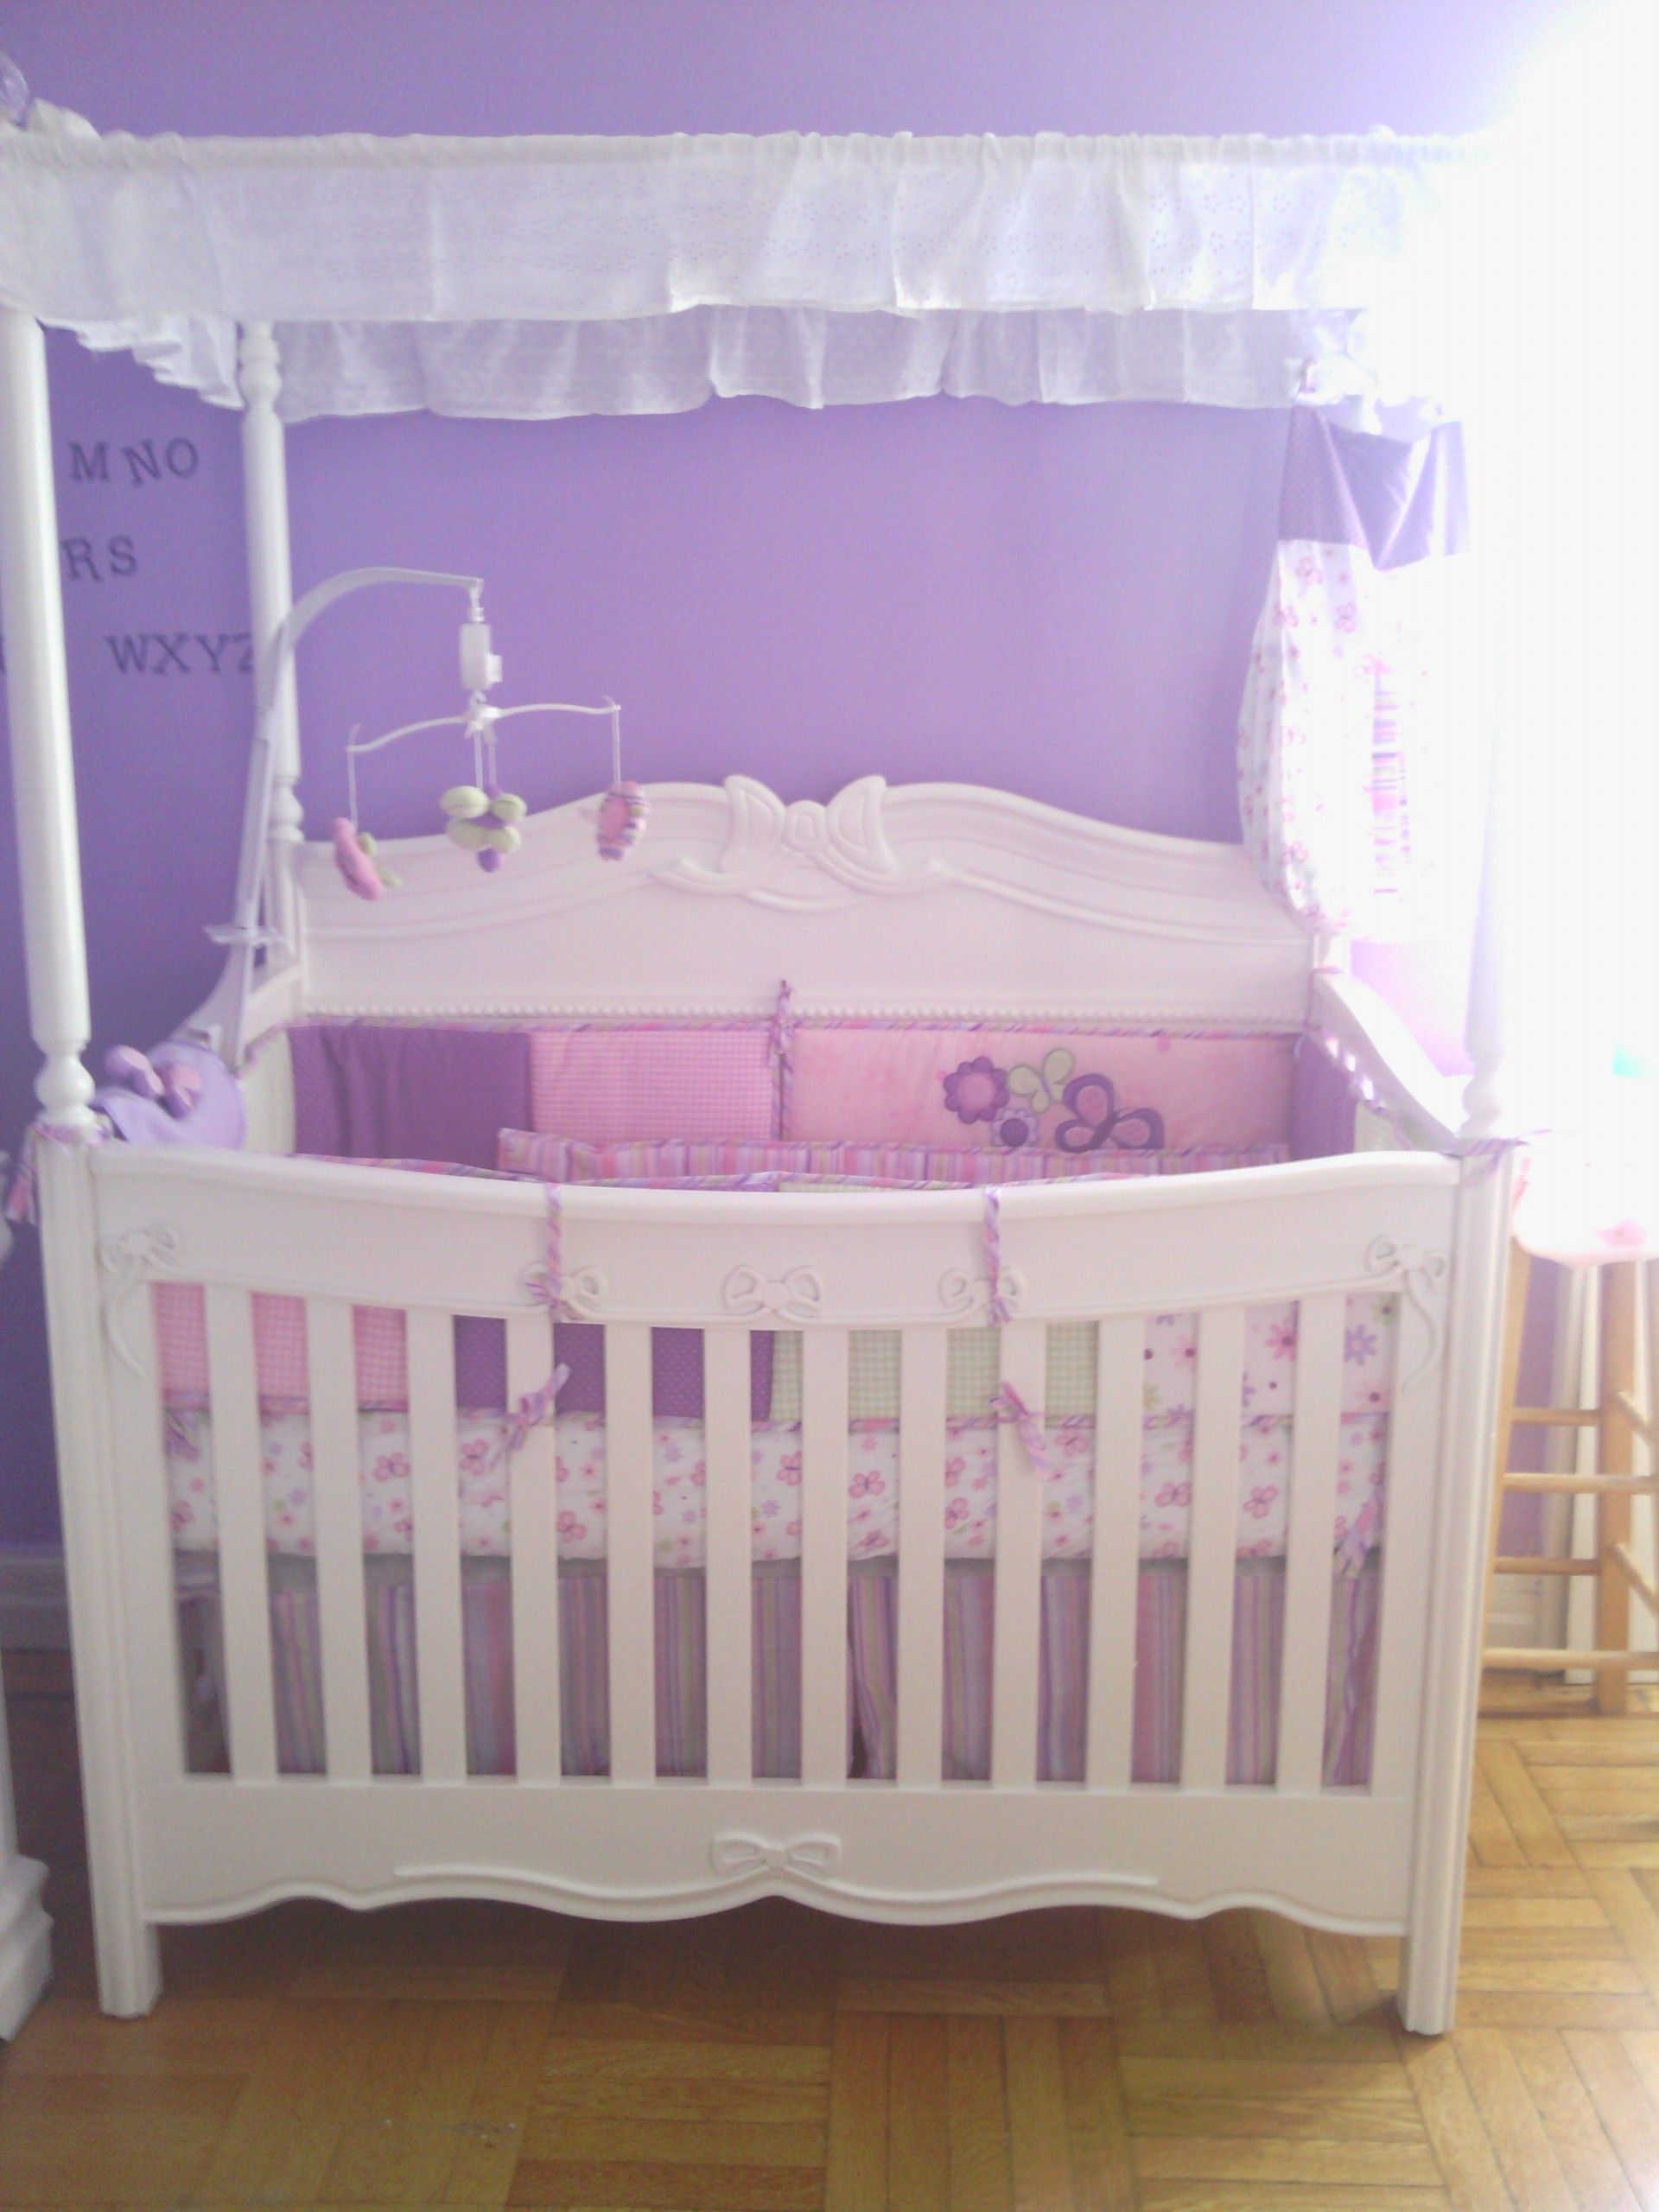 Baby cribs with canopy - Canopy Crib My Baby S Princess White Canopy Convertible